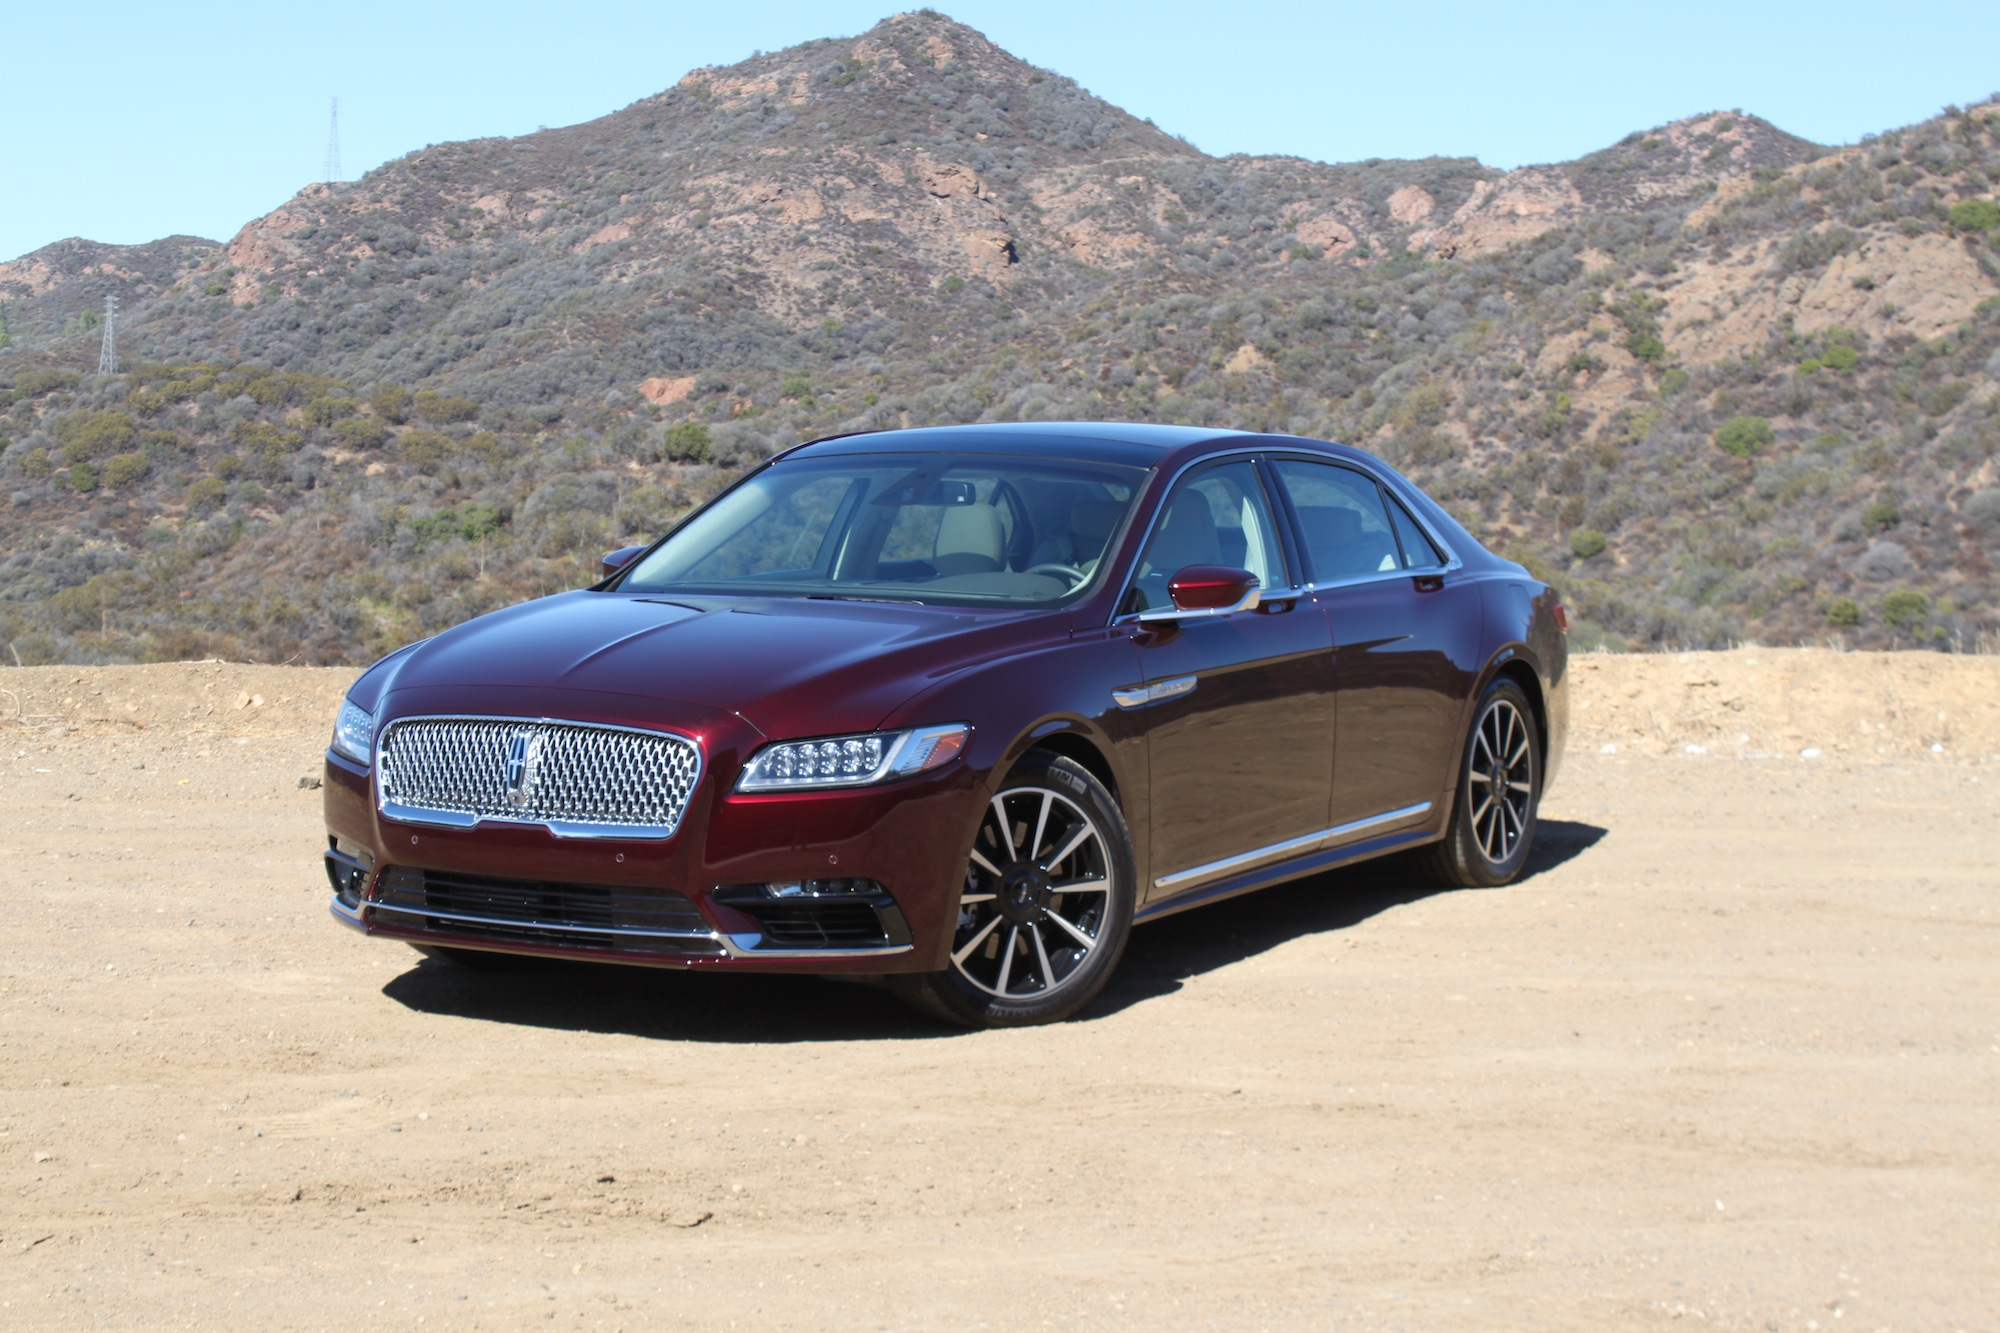 Ford Mustang 2016 >> 2017 Lincoln Continental Review - AutoGuide.com